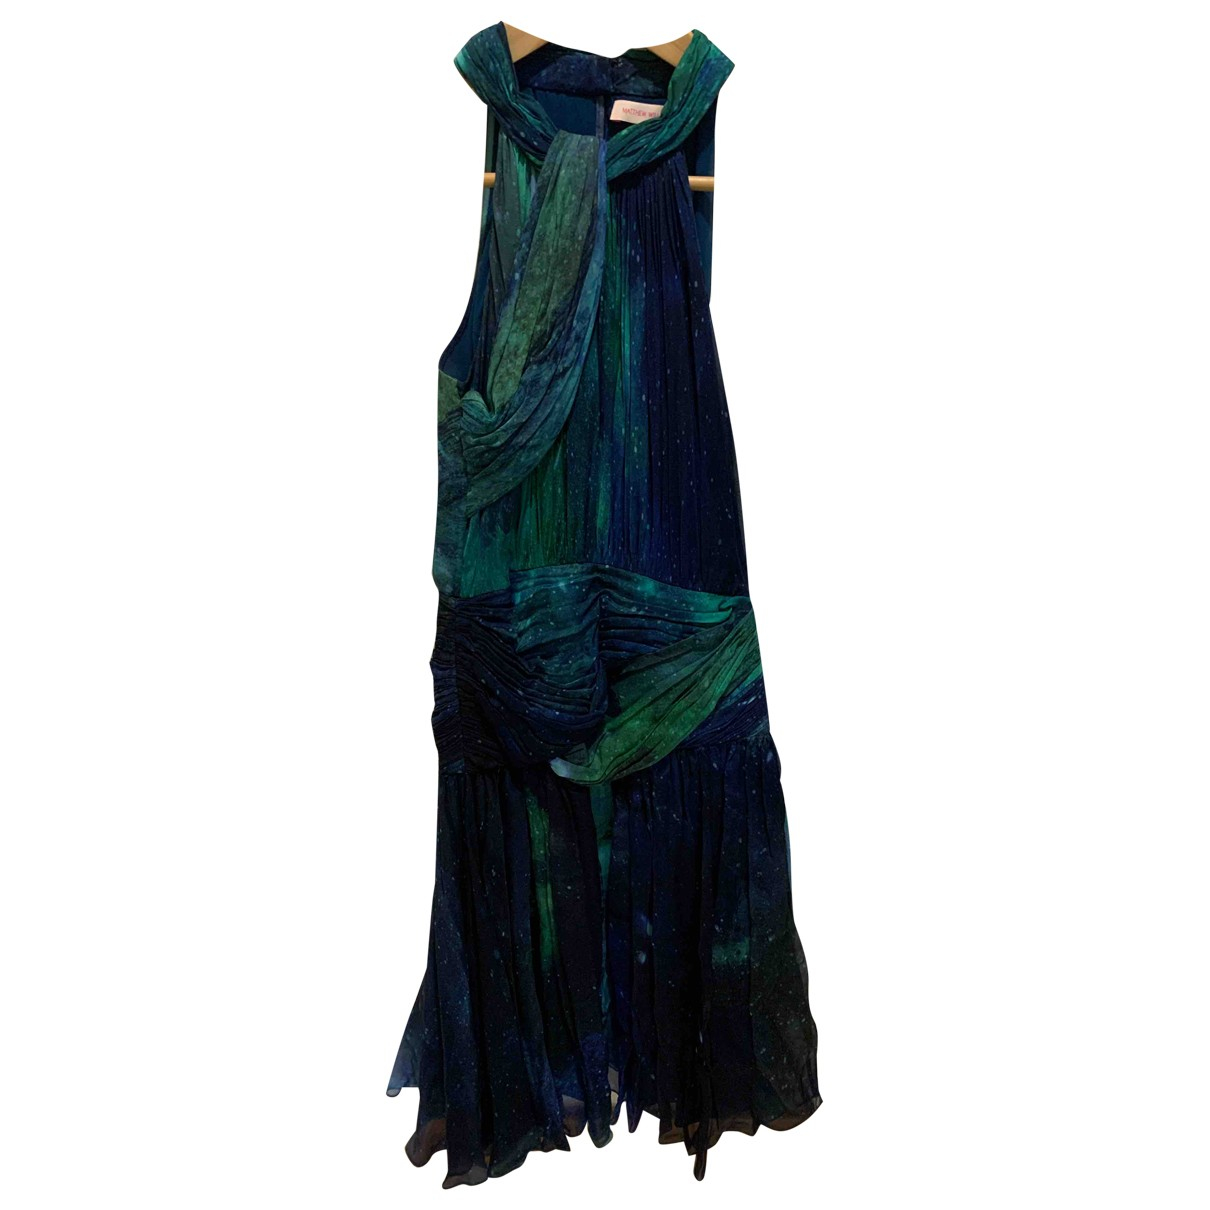 Matthew Williamson N Multicolour Silk dress for Women 6 UK